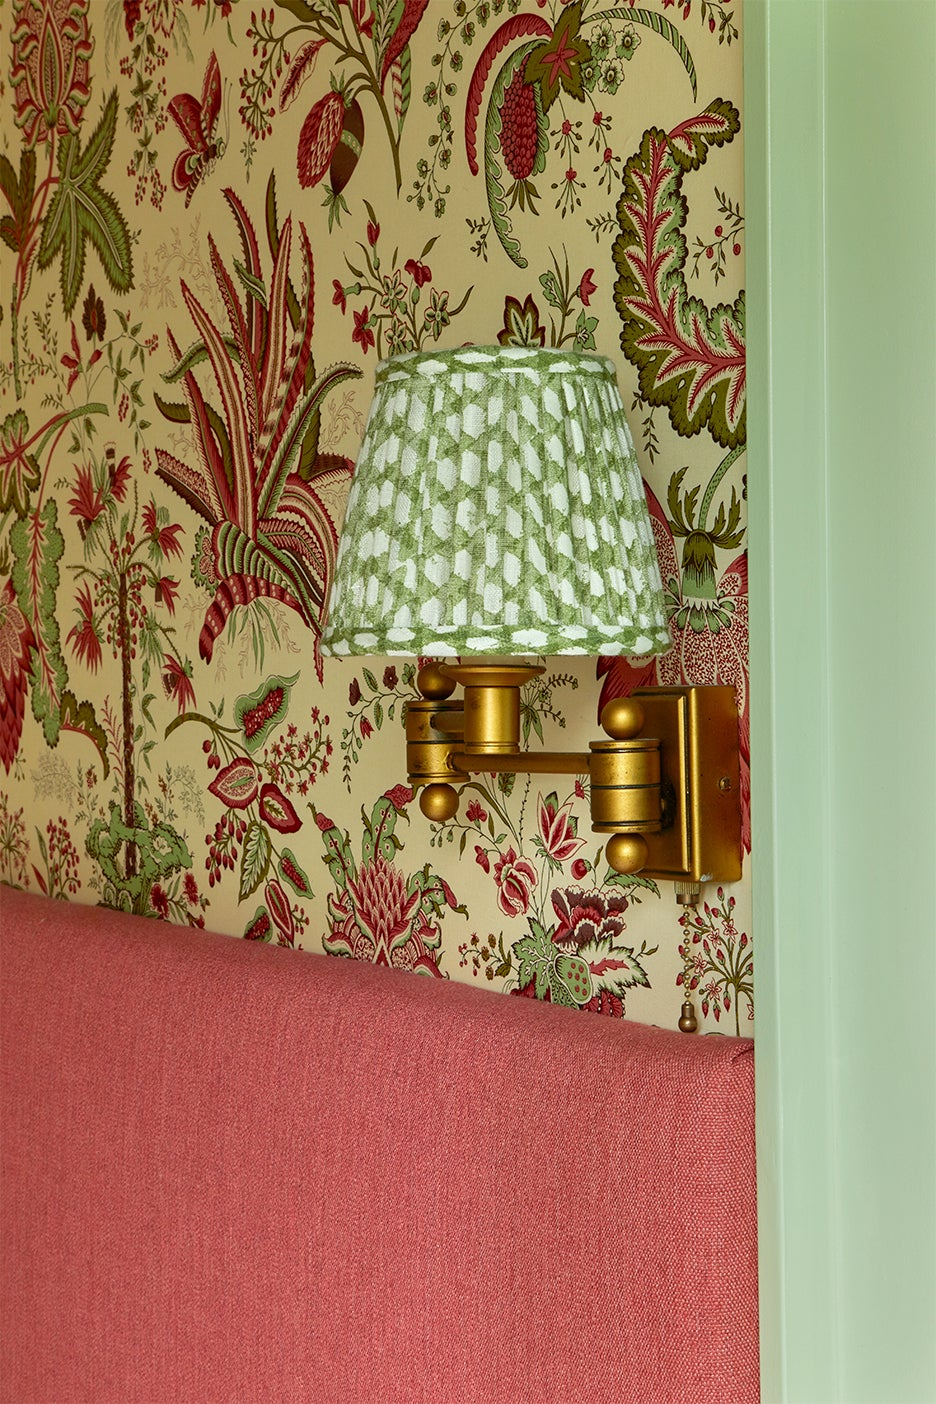 Floral fabric walls with brass sconce